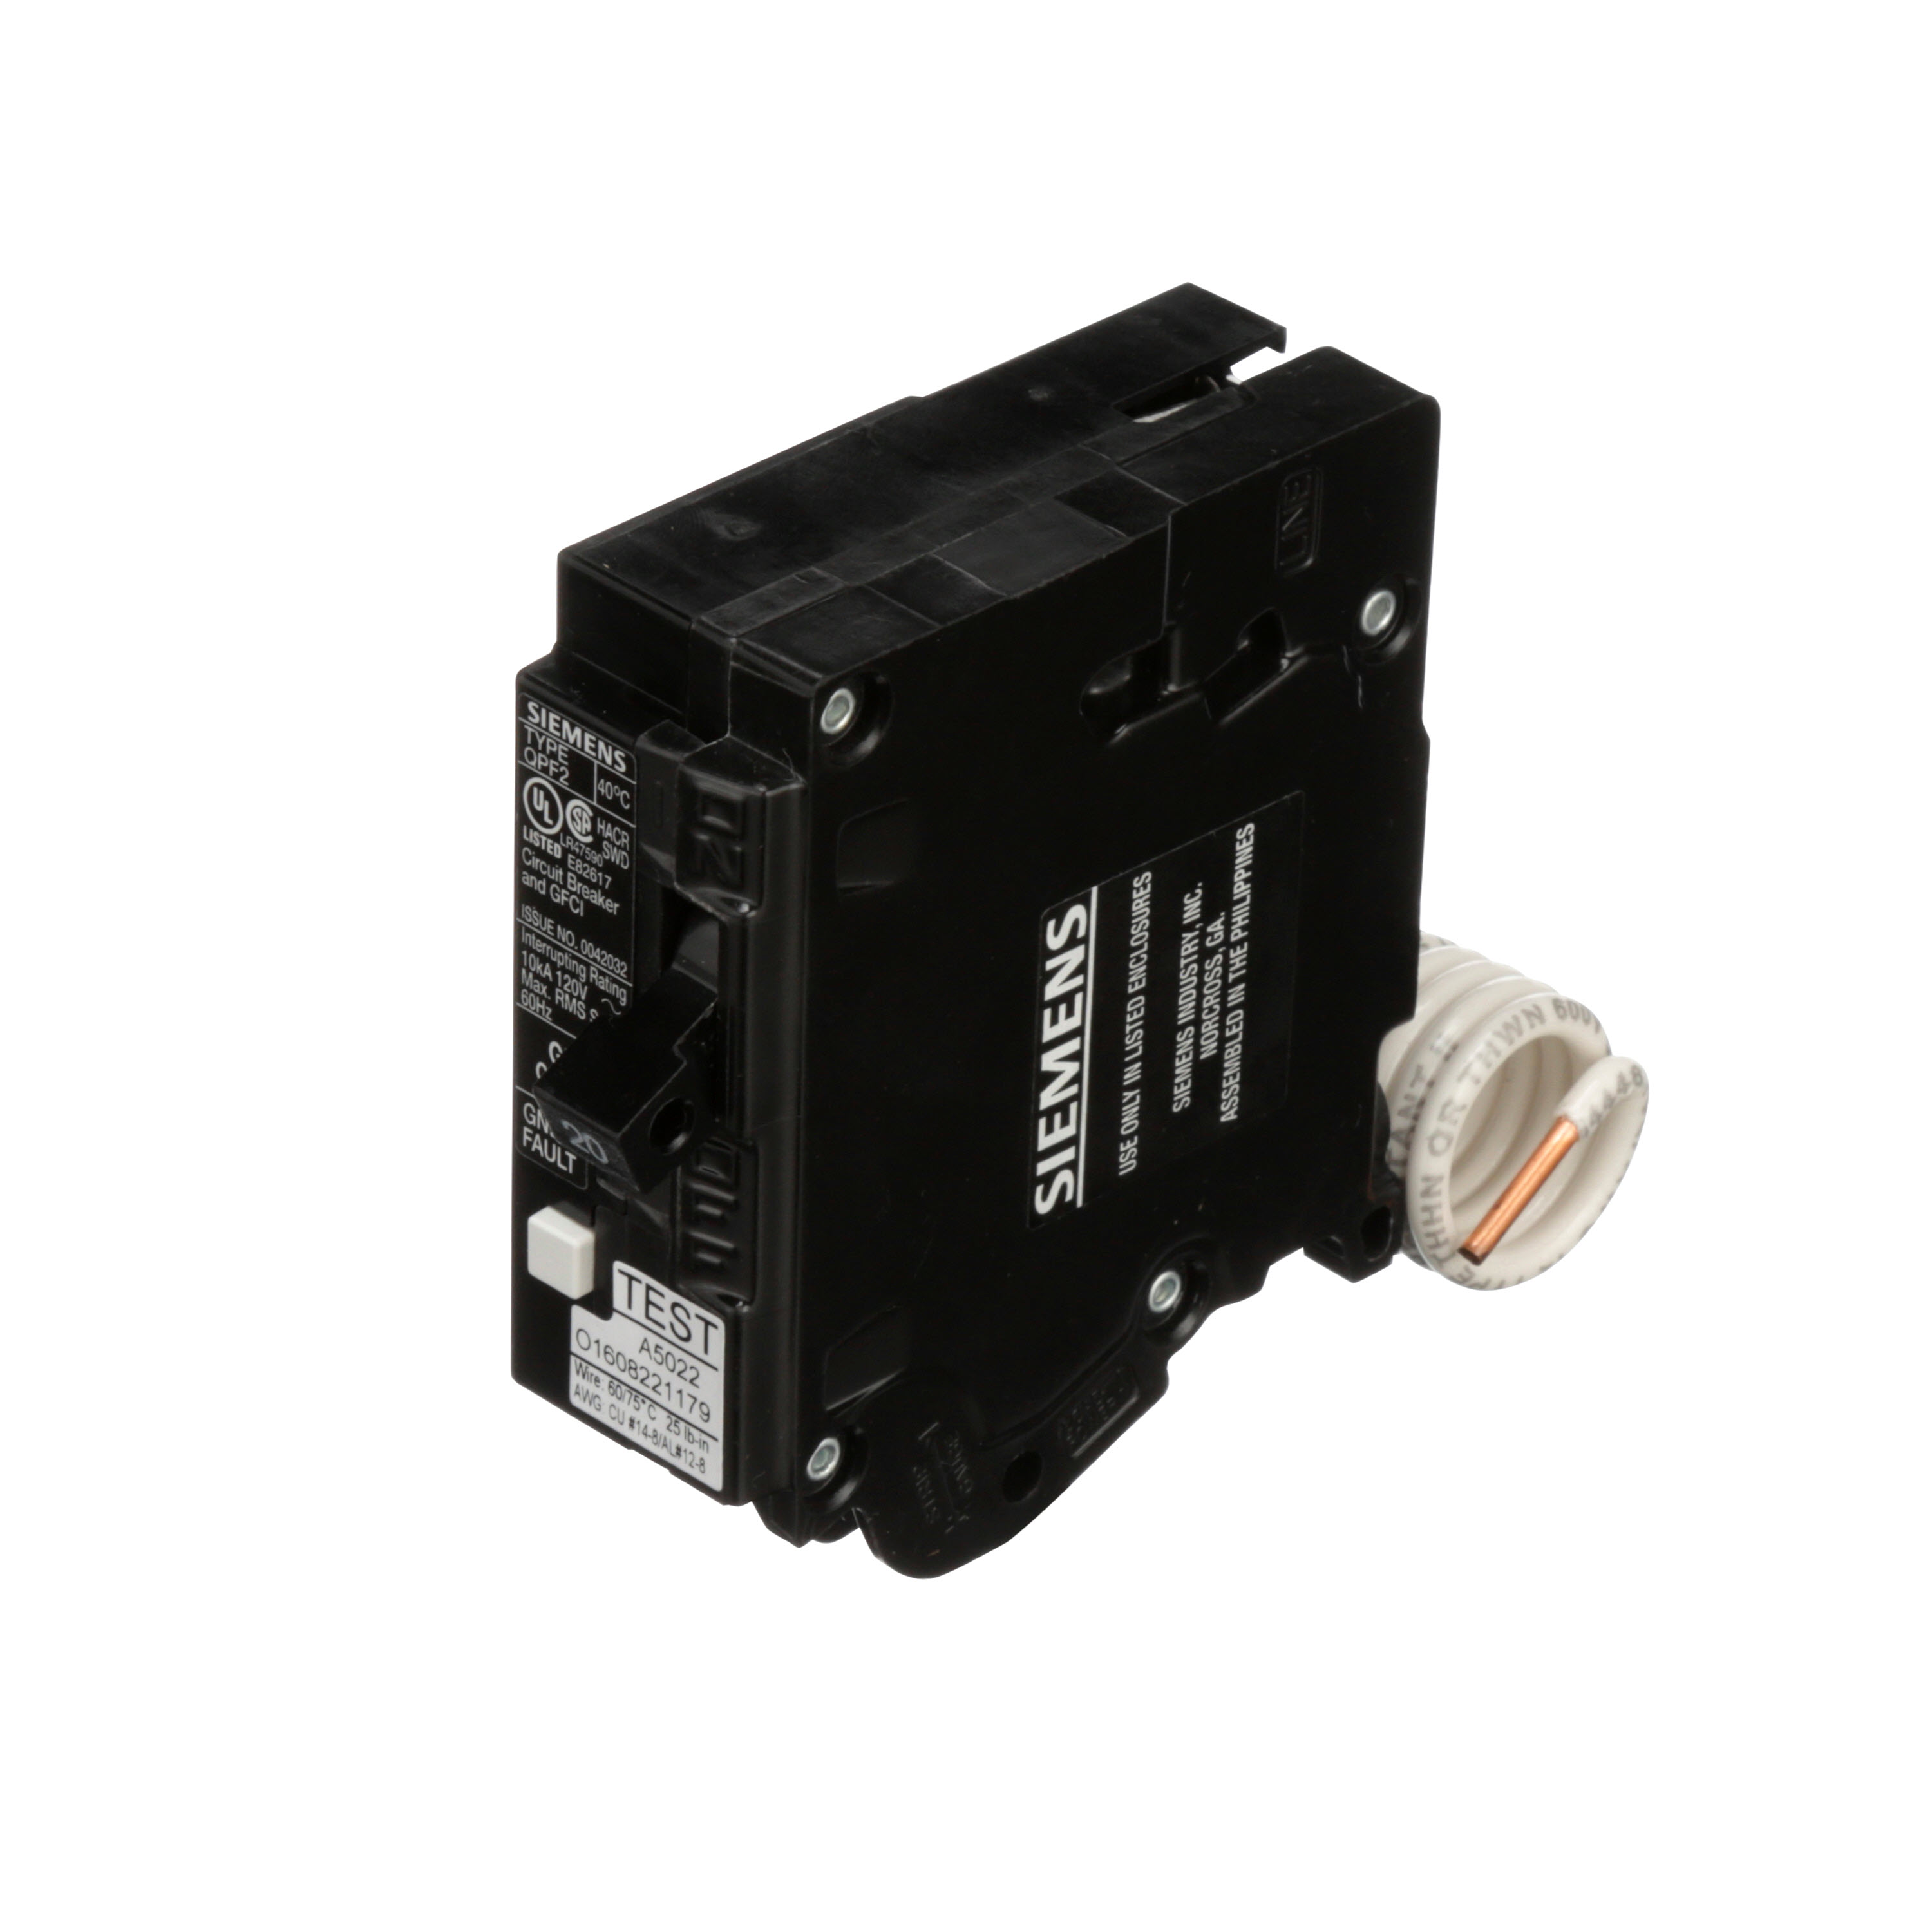 Circuit Protection Devices Breakers Frost 200 Amp Federal Pacific Fuse Box 20 1 Pole Gfci Breaker Plug In 10k Aic 5ma